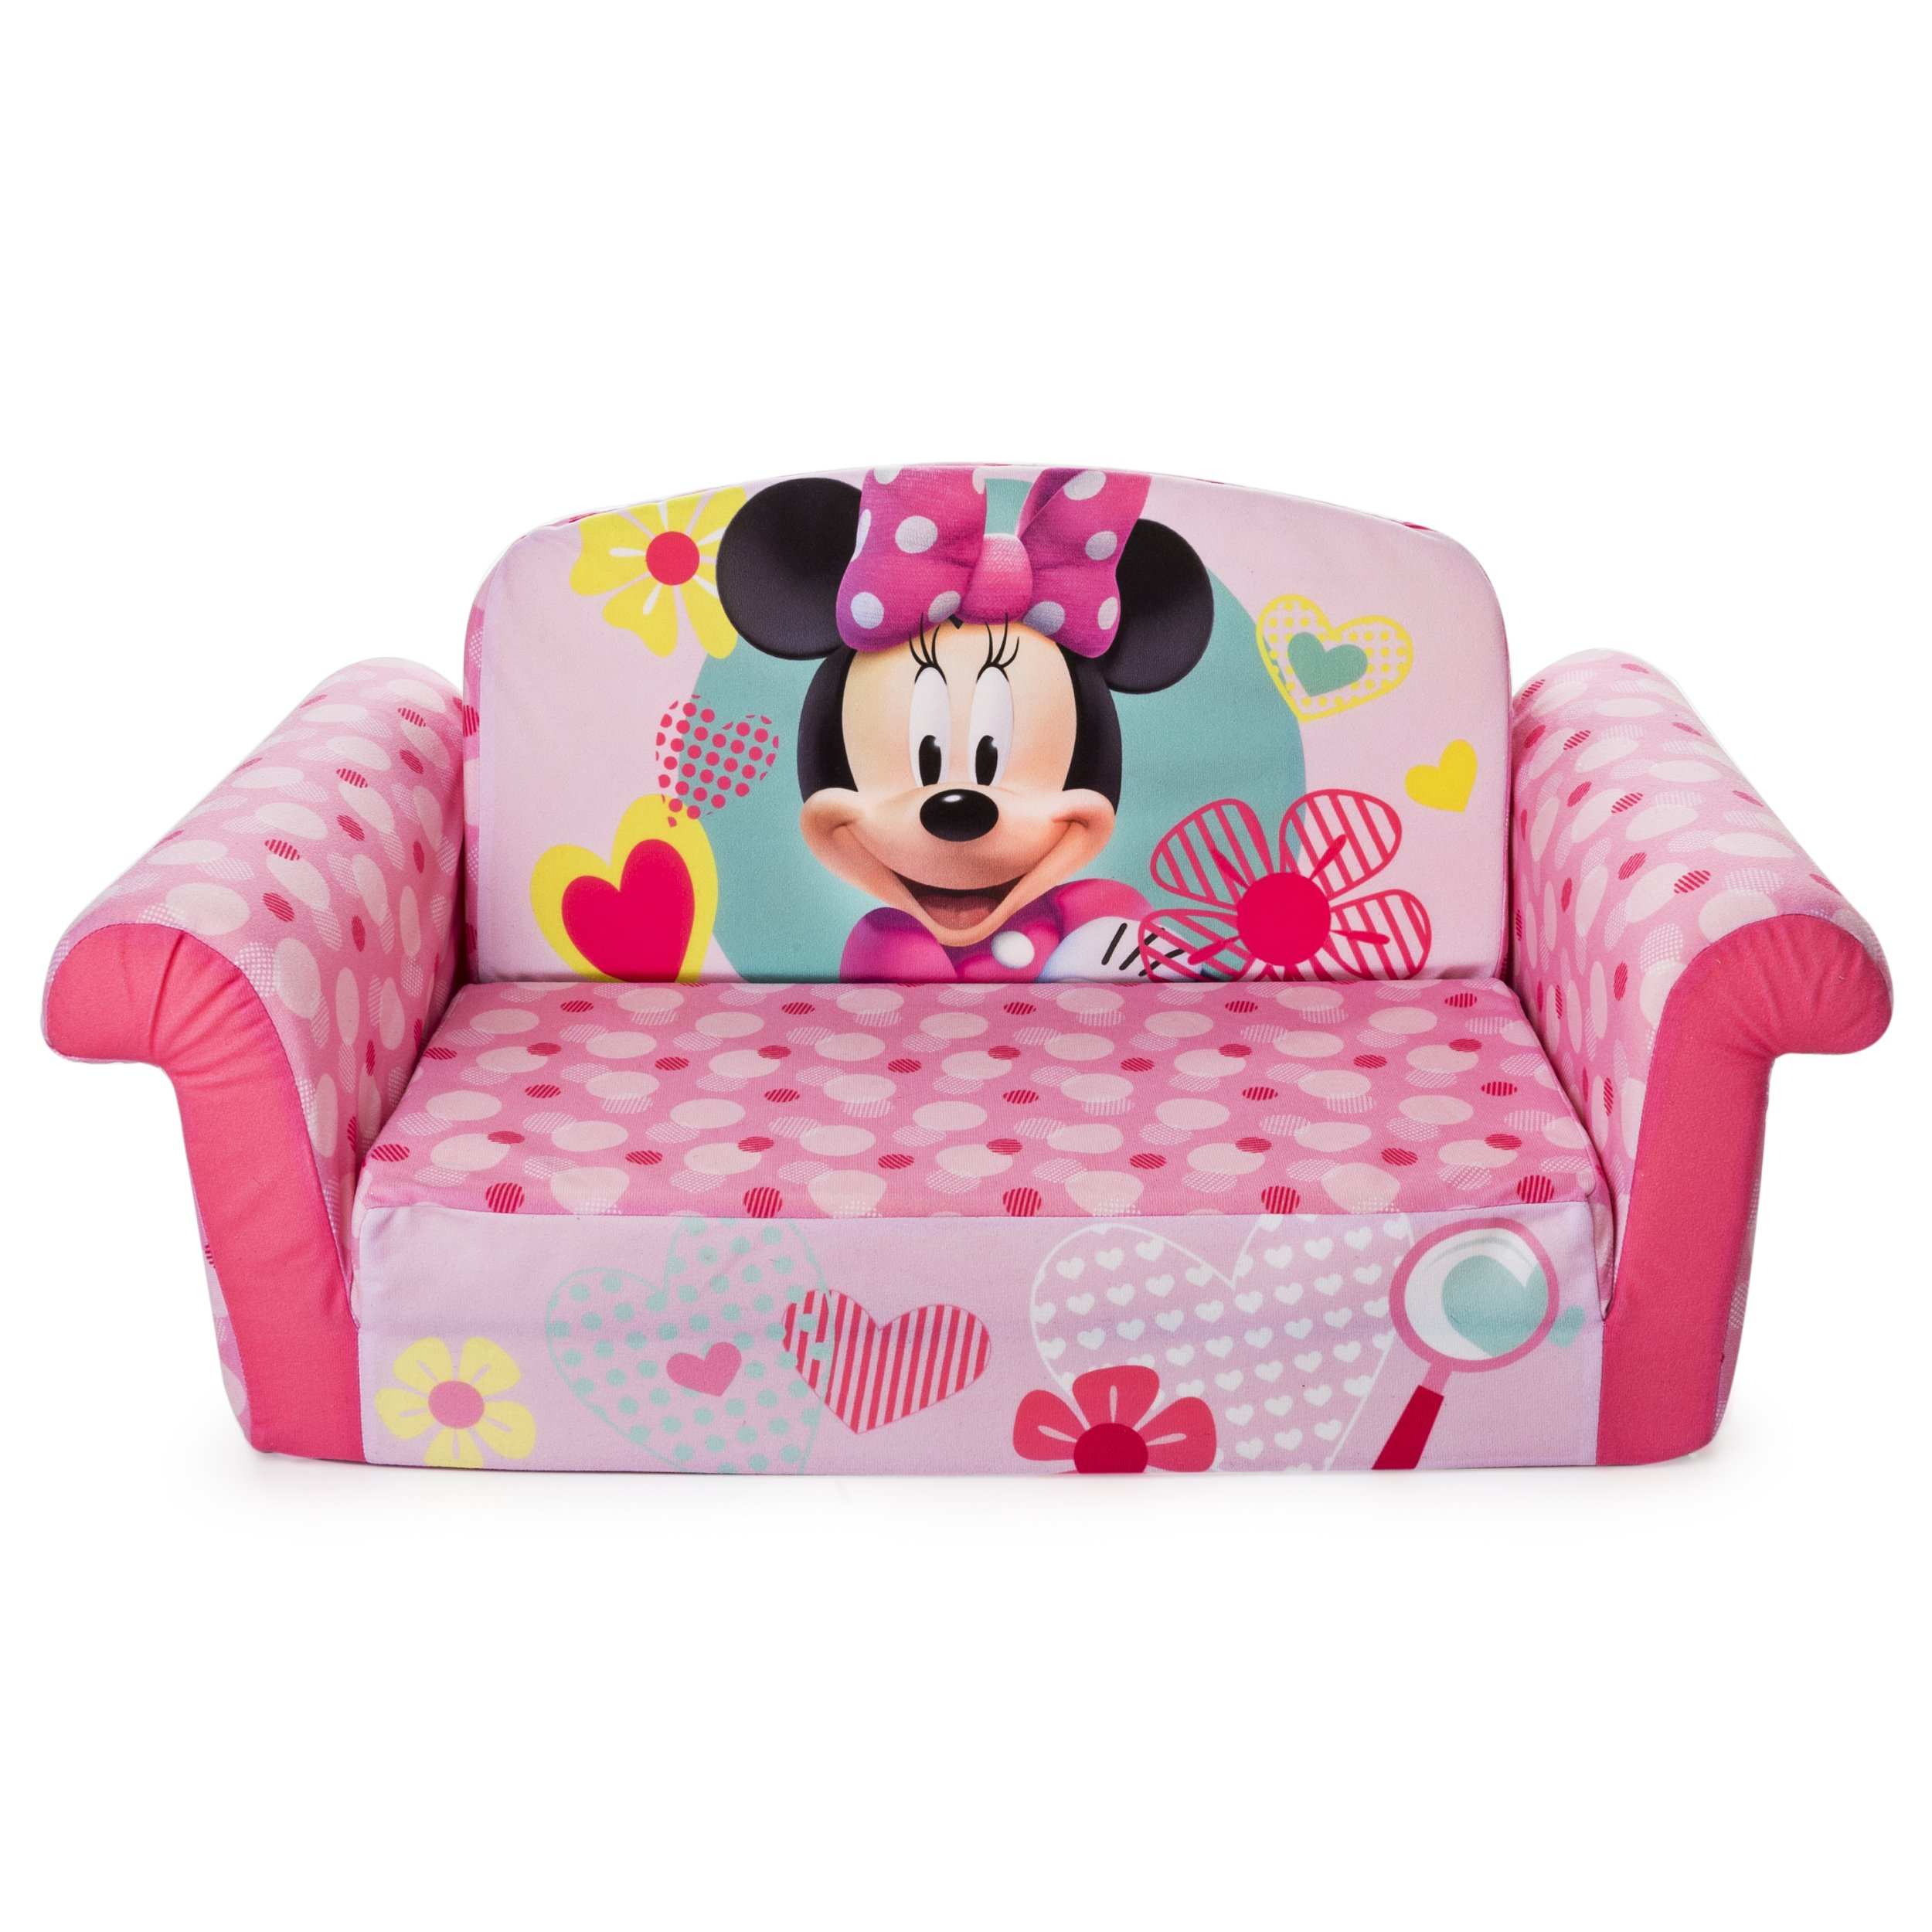 Marshmallow Furniture, Children's 2 in 1 Flip Open Foam Sofa, Minnie Mouse, by Spin Master by Marshmallow Furniture